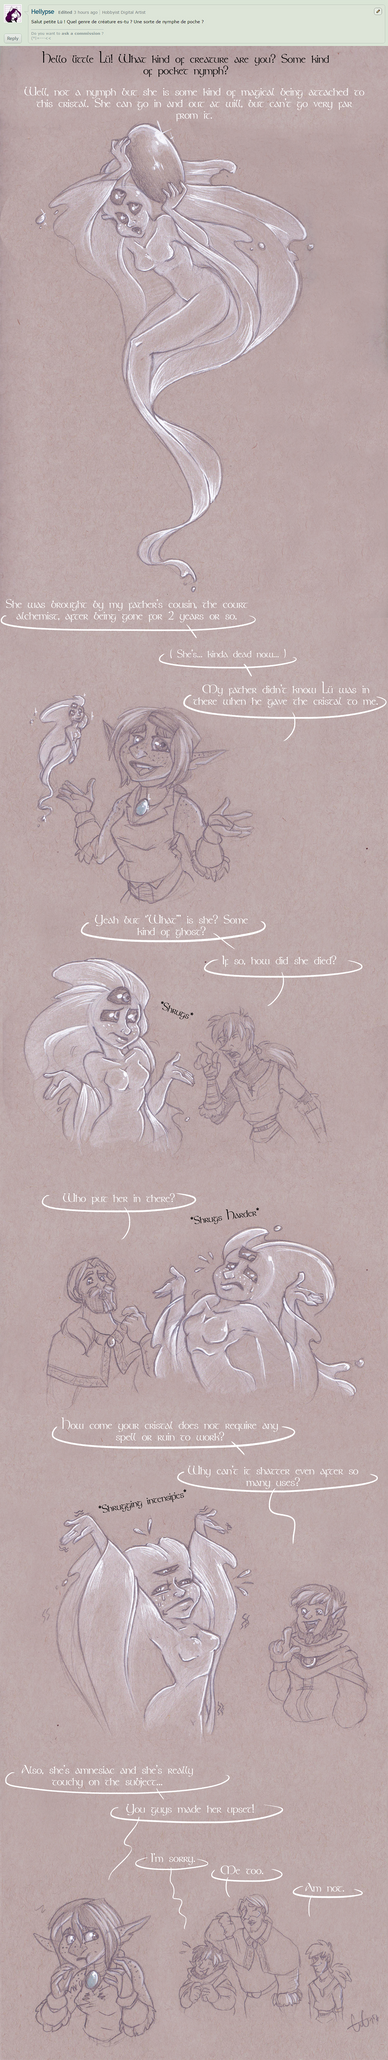 Ask My Ocs - The Mysterious Lu by GreenOverGreen